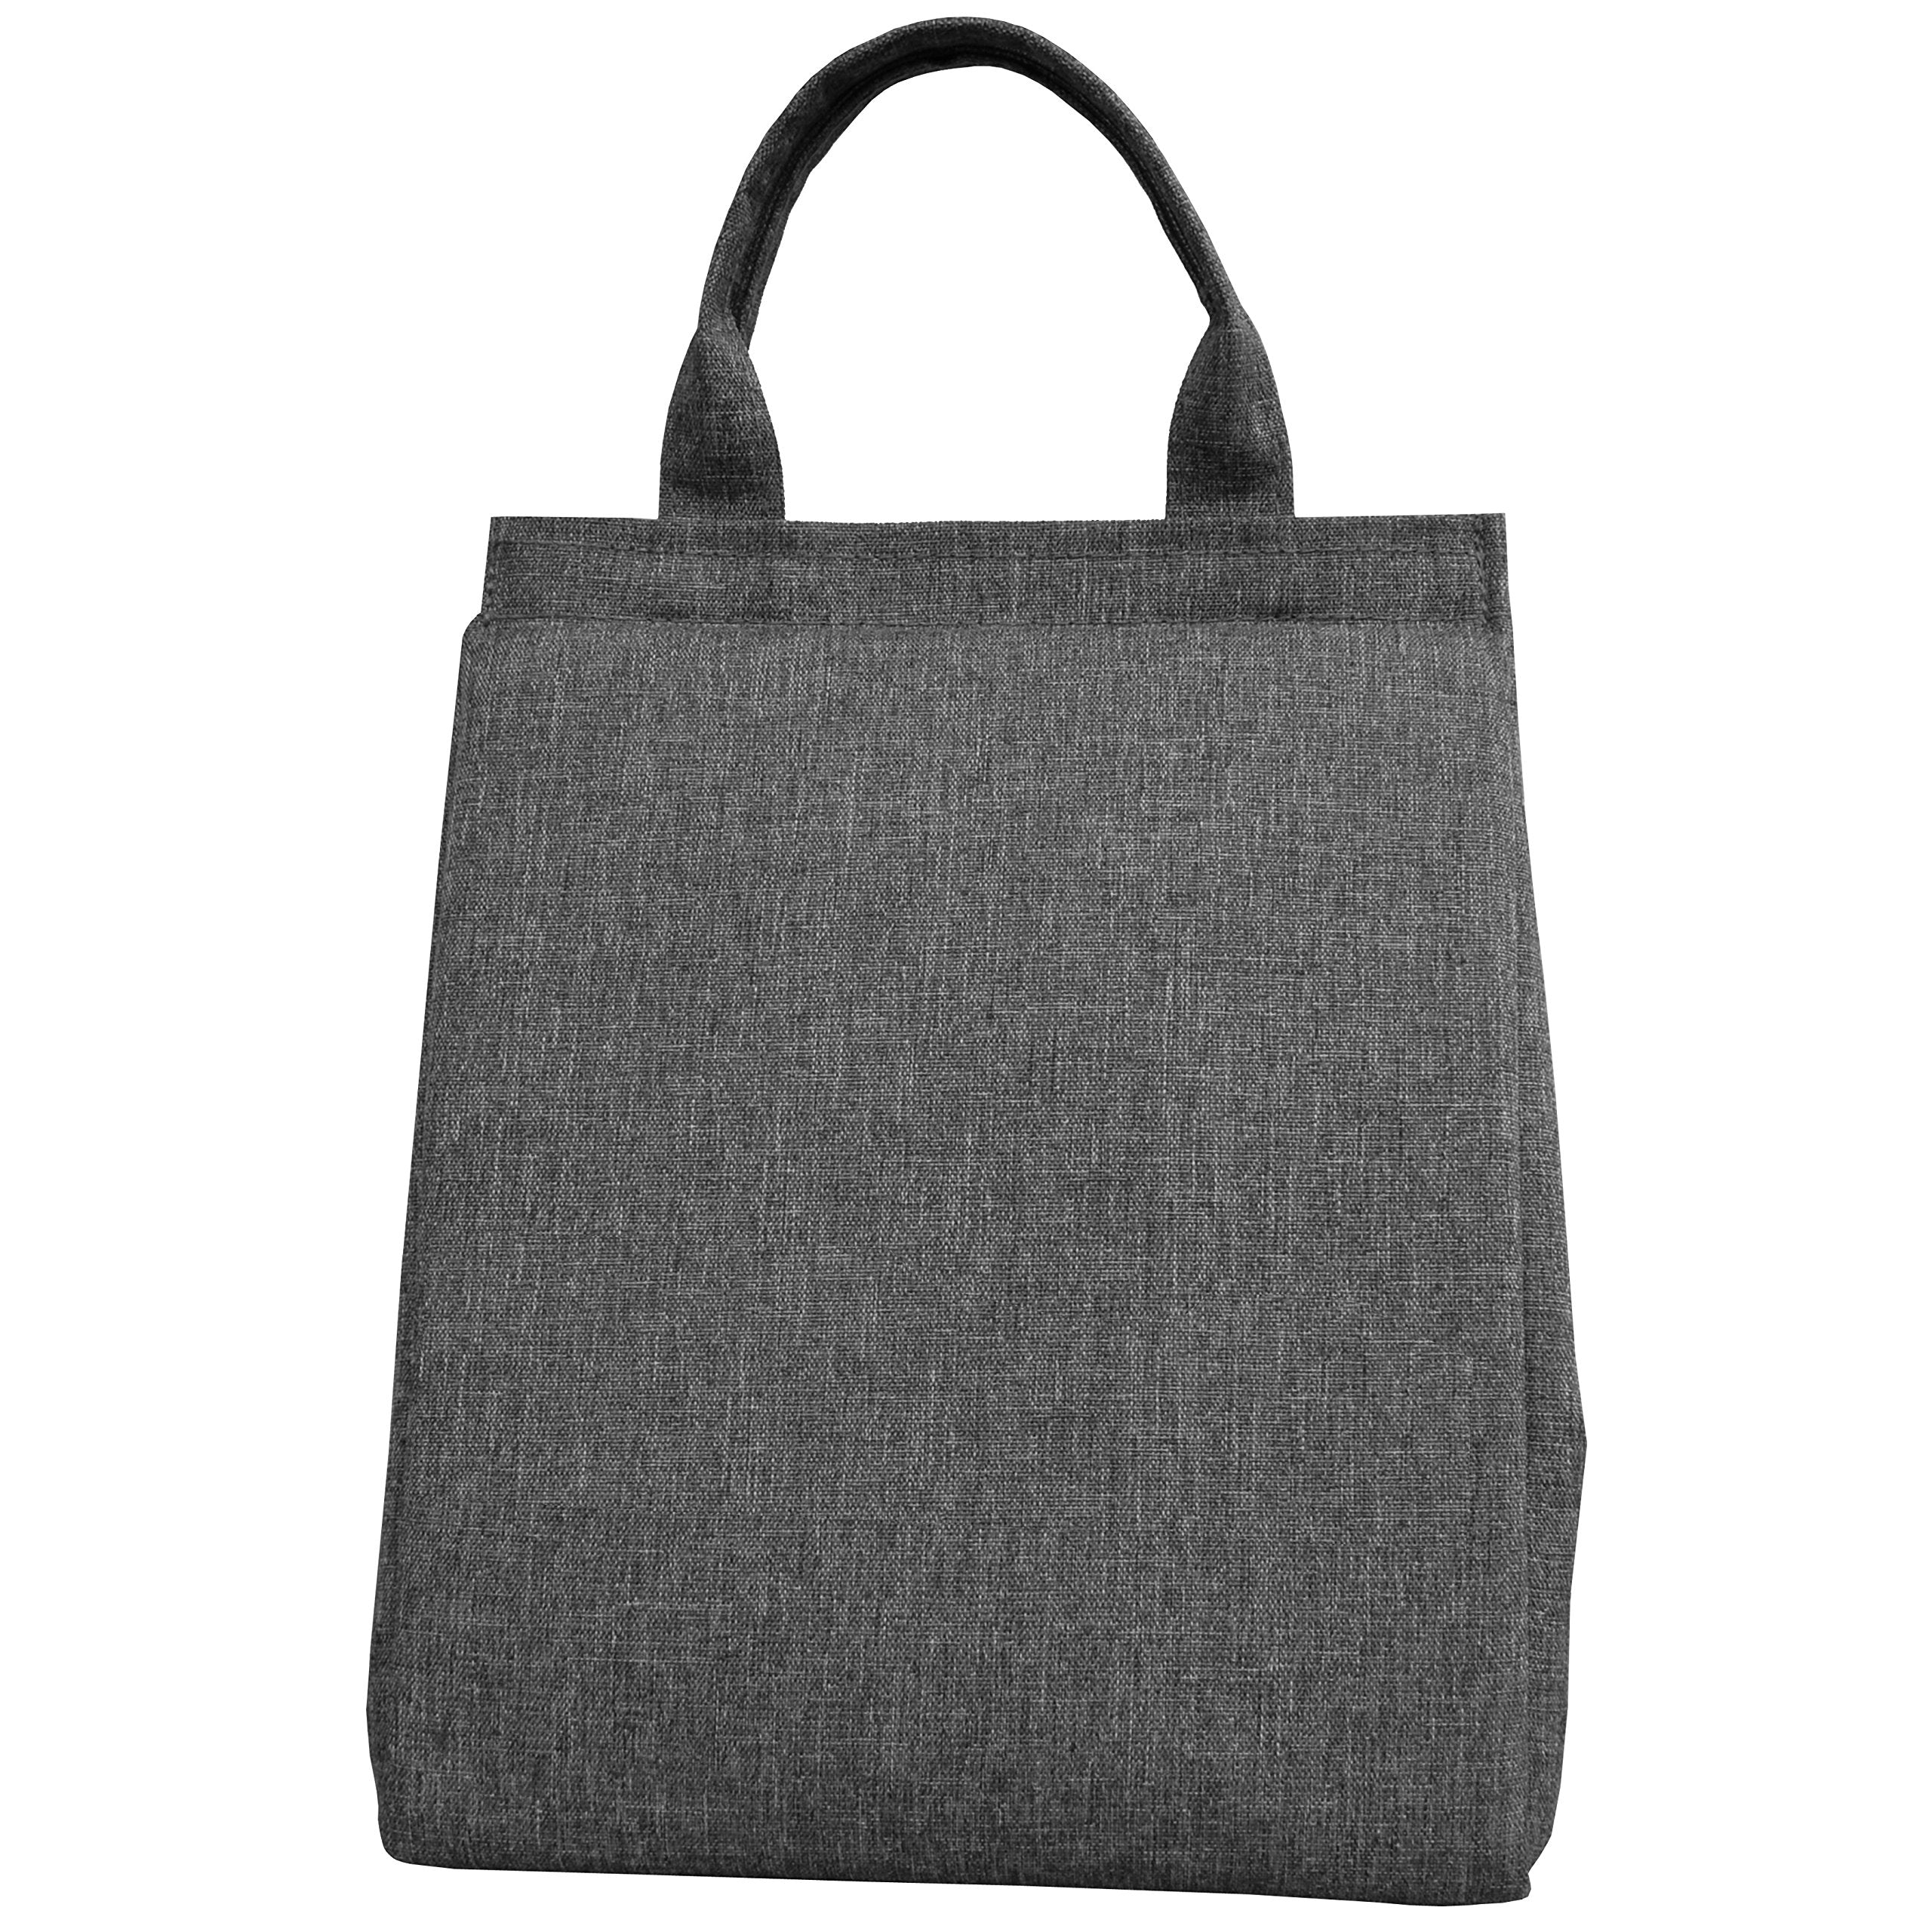 Other Feeding   Nursing - Lunch Bag Lunch Box Cooler Bag by KOKAKO ... 88355d004